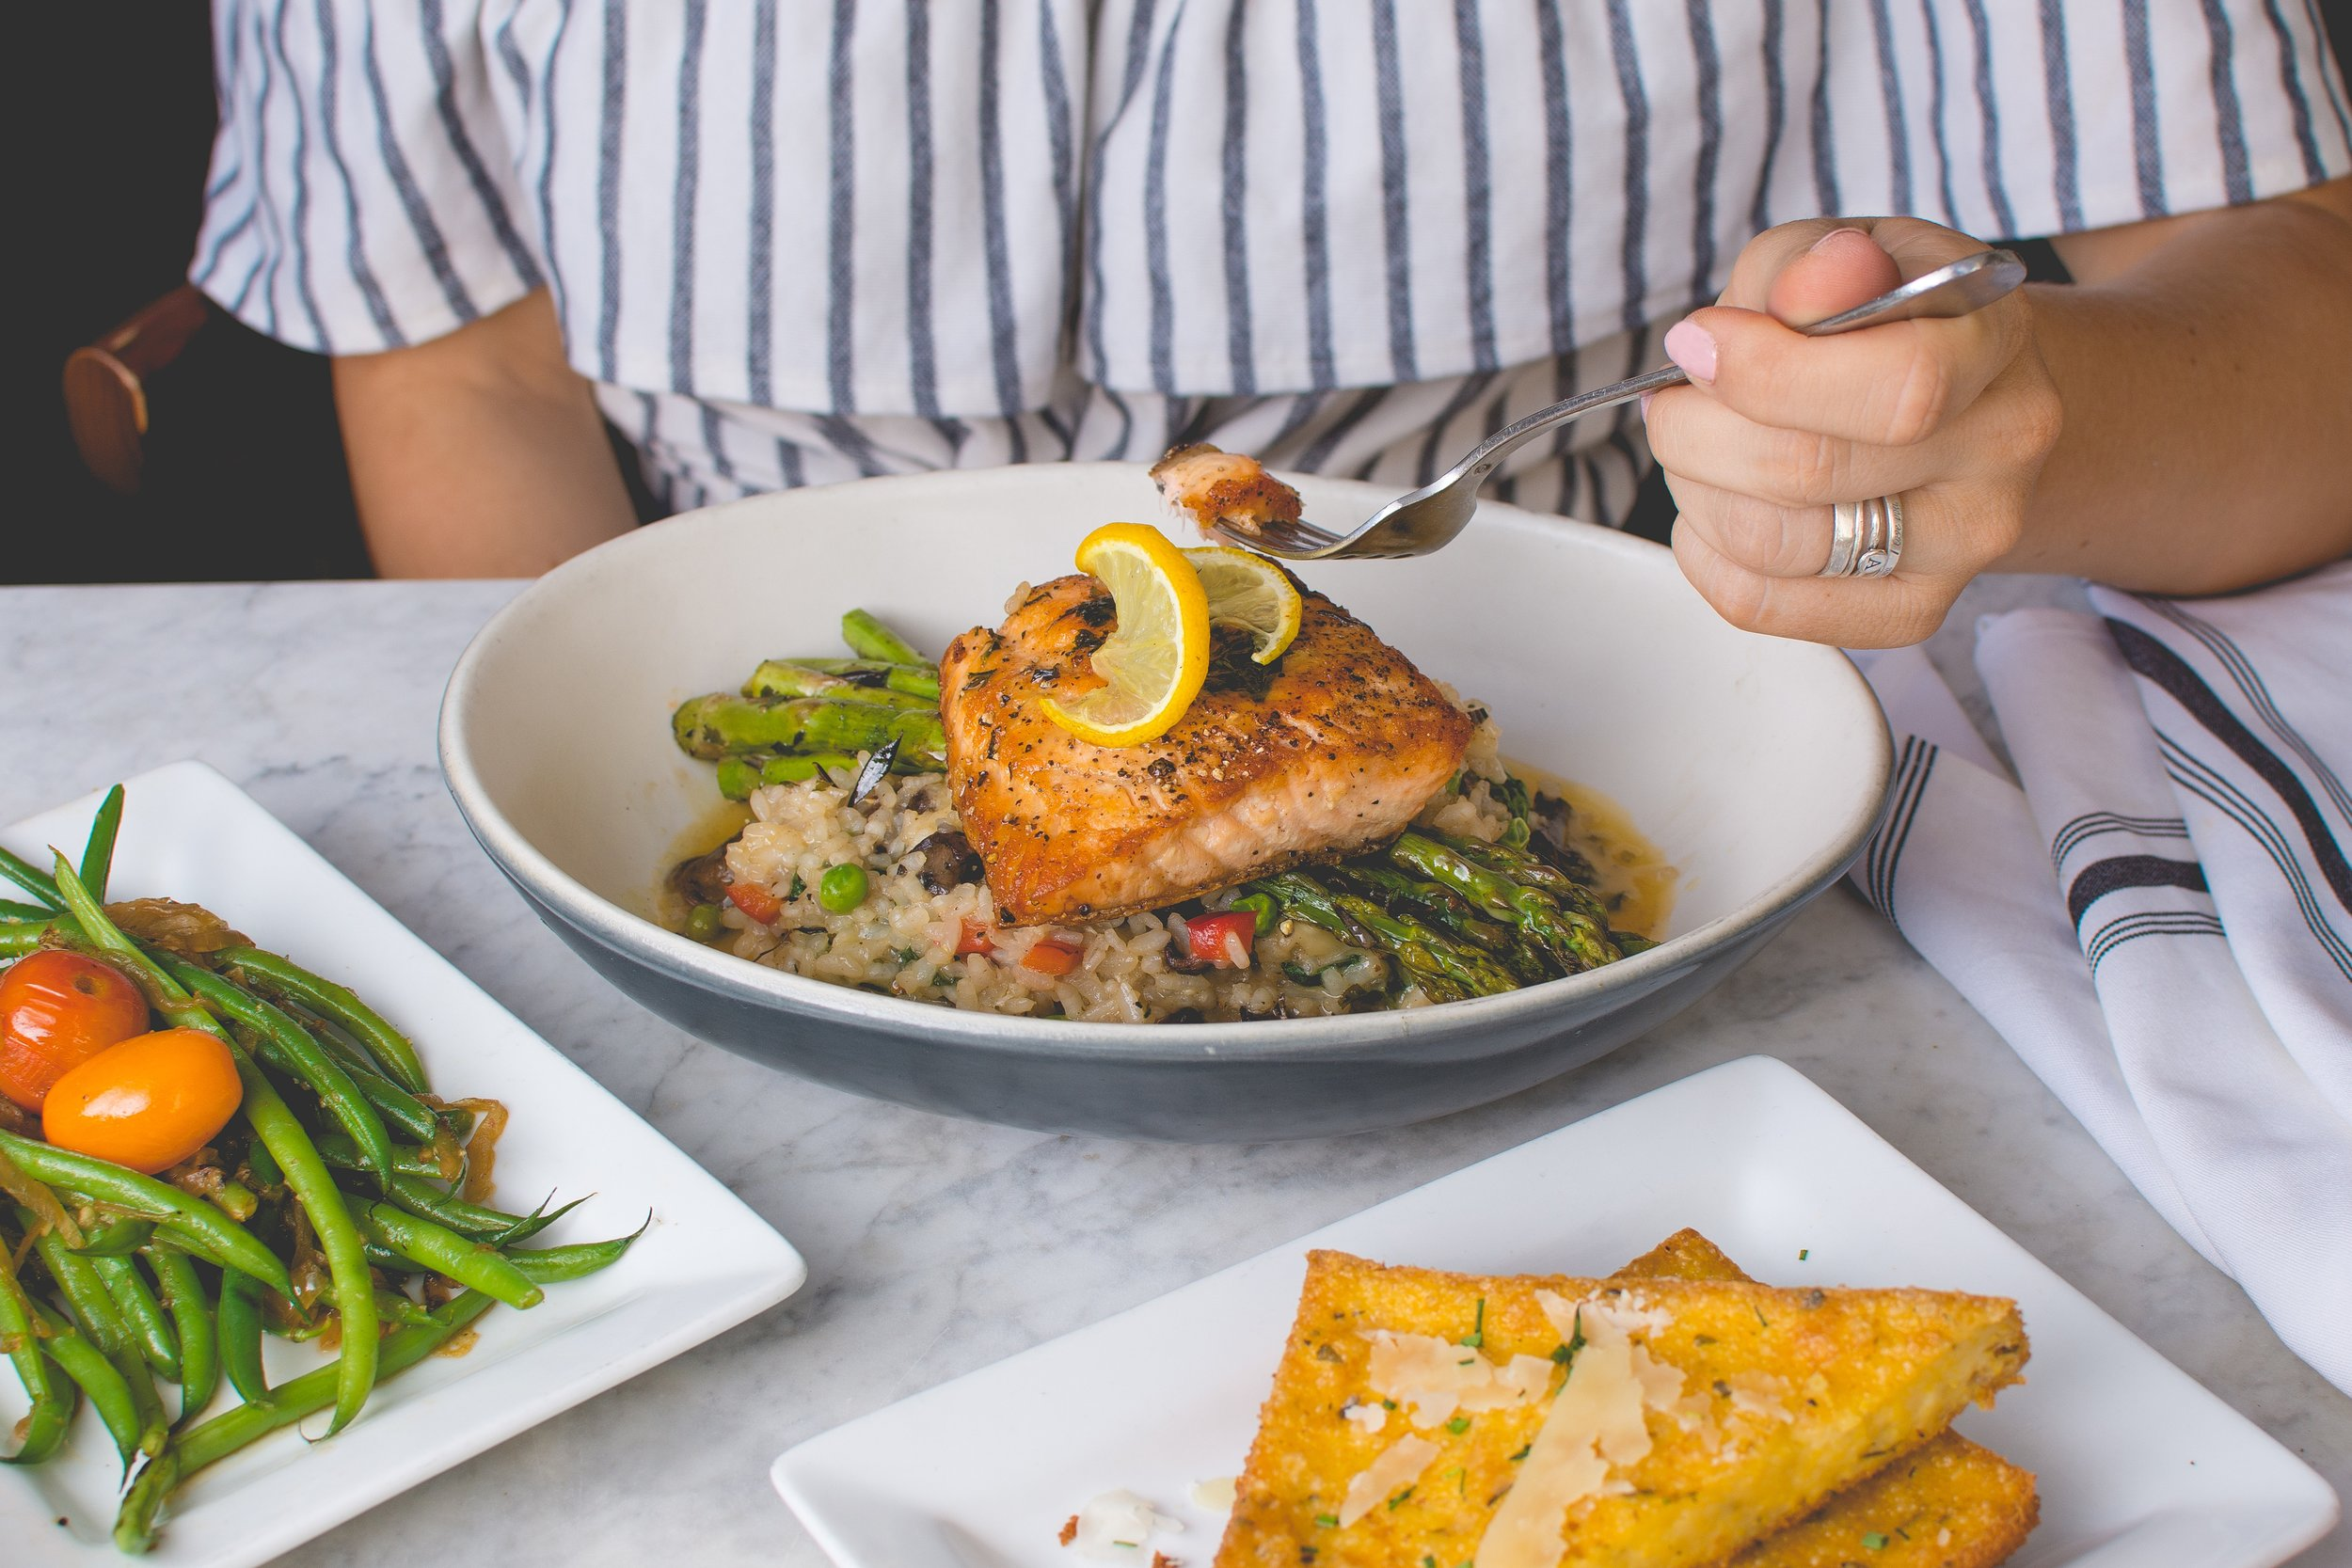 Omega-3s can be found in salmon and can help lower blood sugar. Photo by  Travis Yewell  on  Unsplash